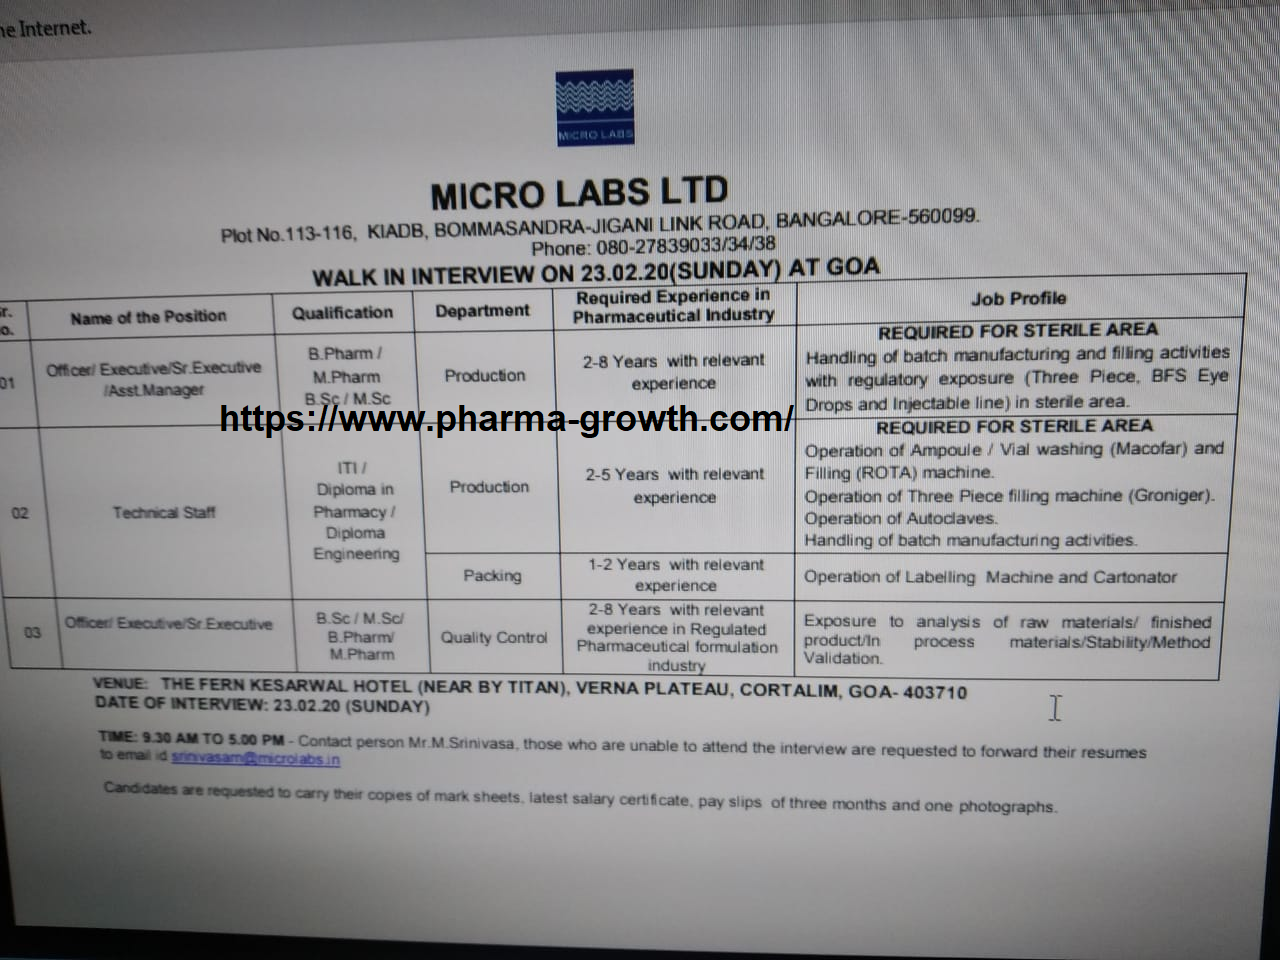 Micro Lab Ltd - Walk in interview for Production, Quality Control, Packing on 23rd Feb 2020